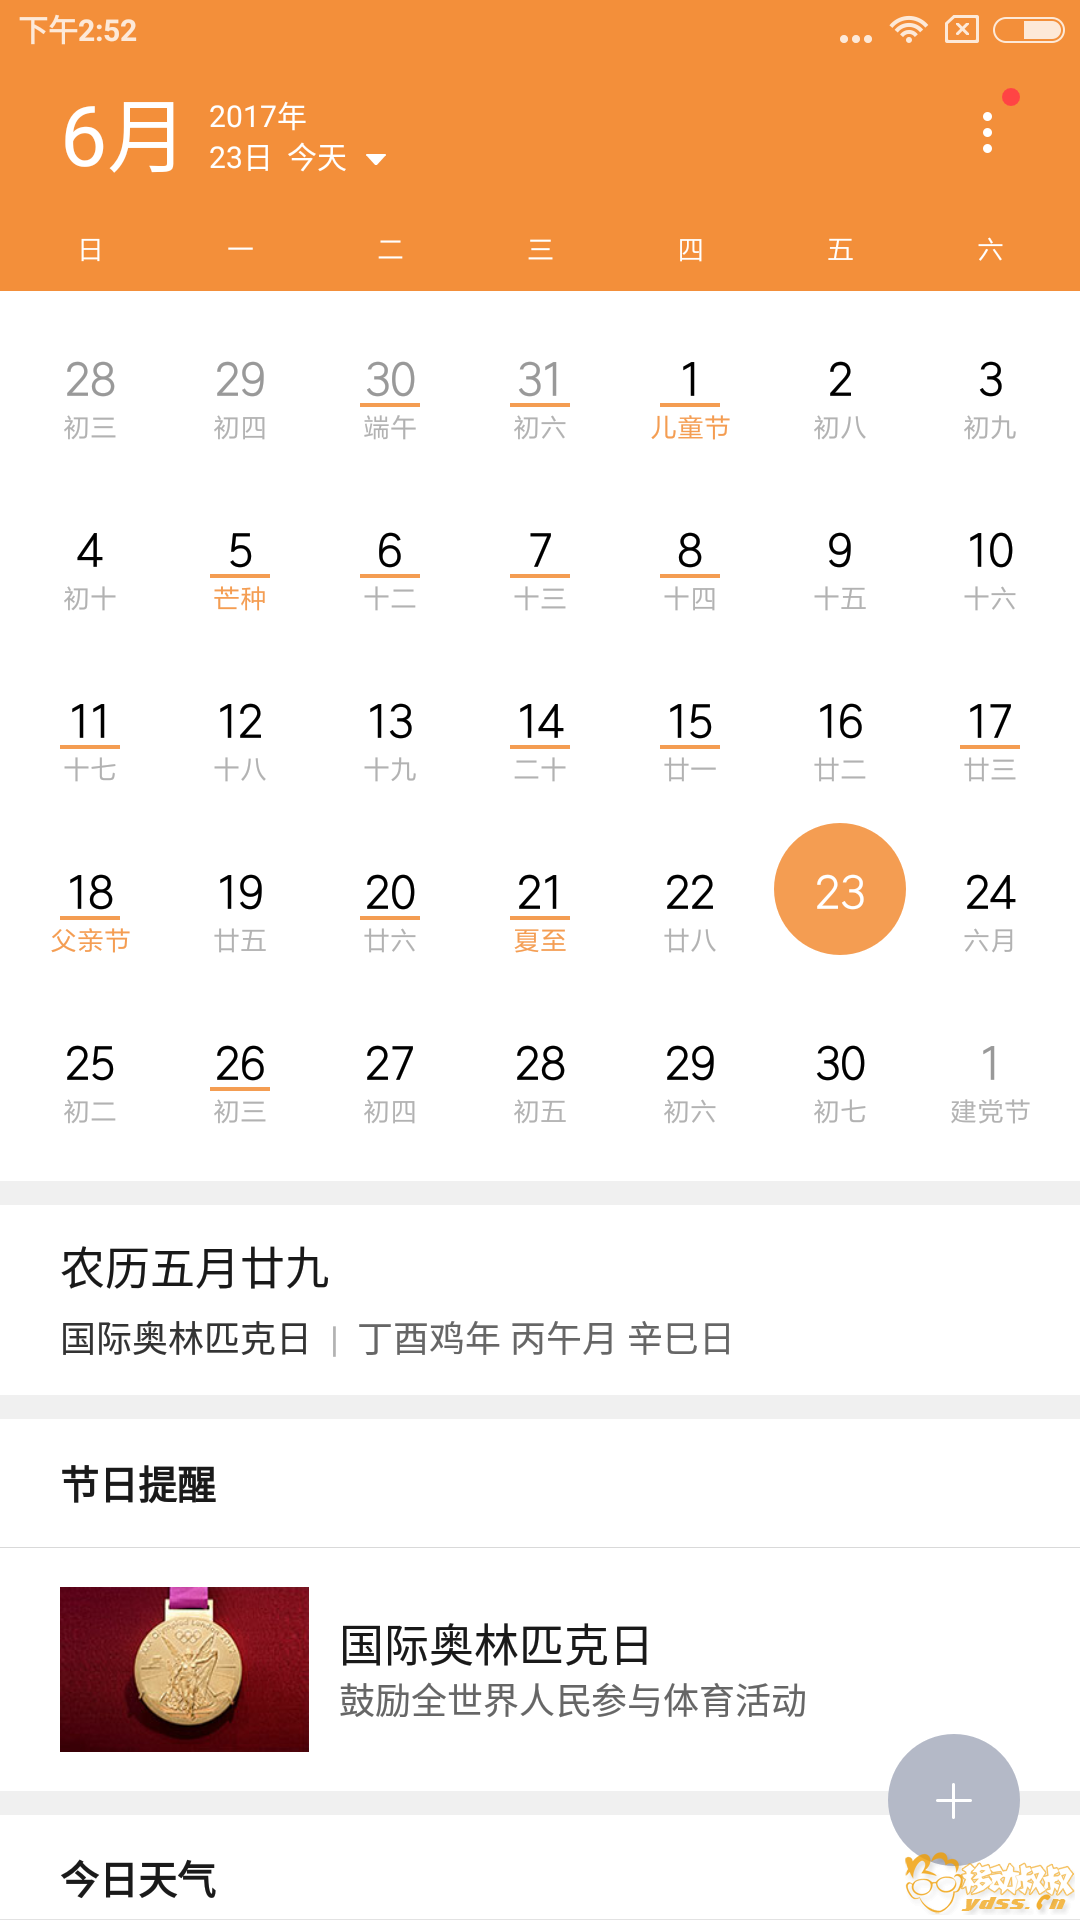 Screenshot_2017-06-23-14-52-09-350_com.android.calendar.png